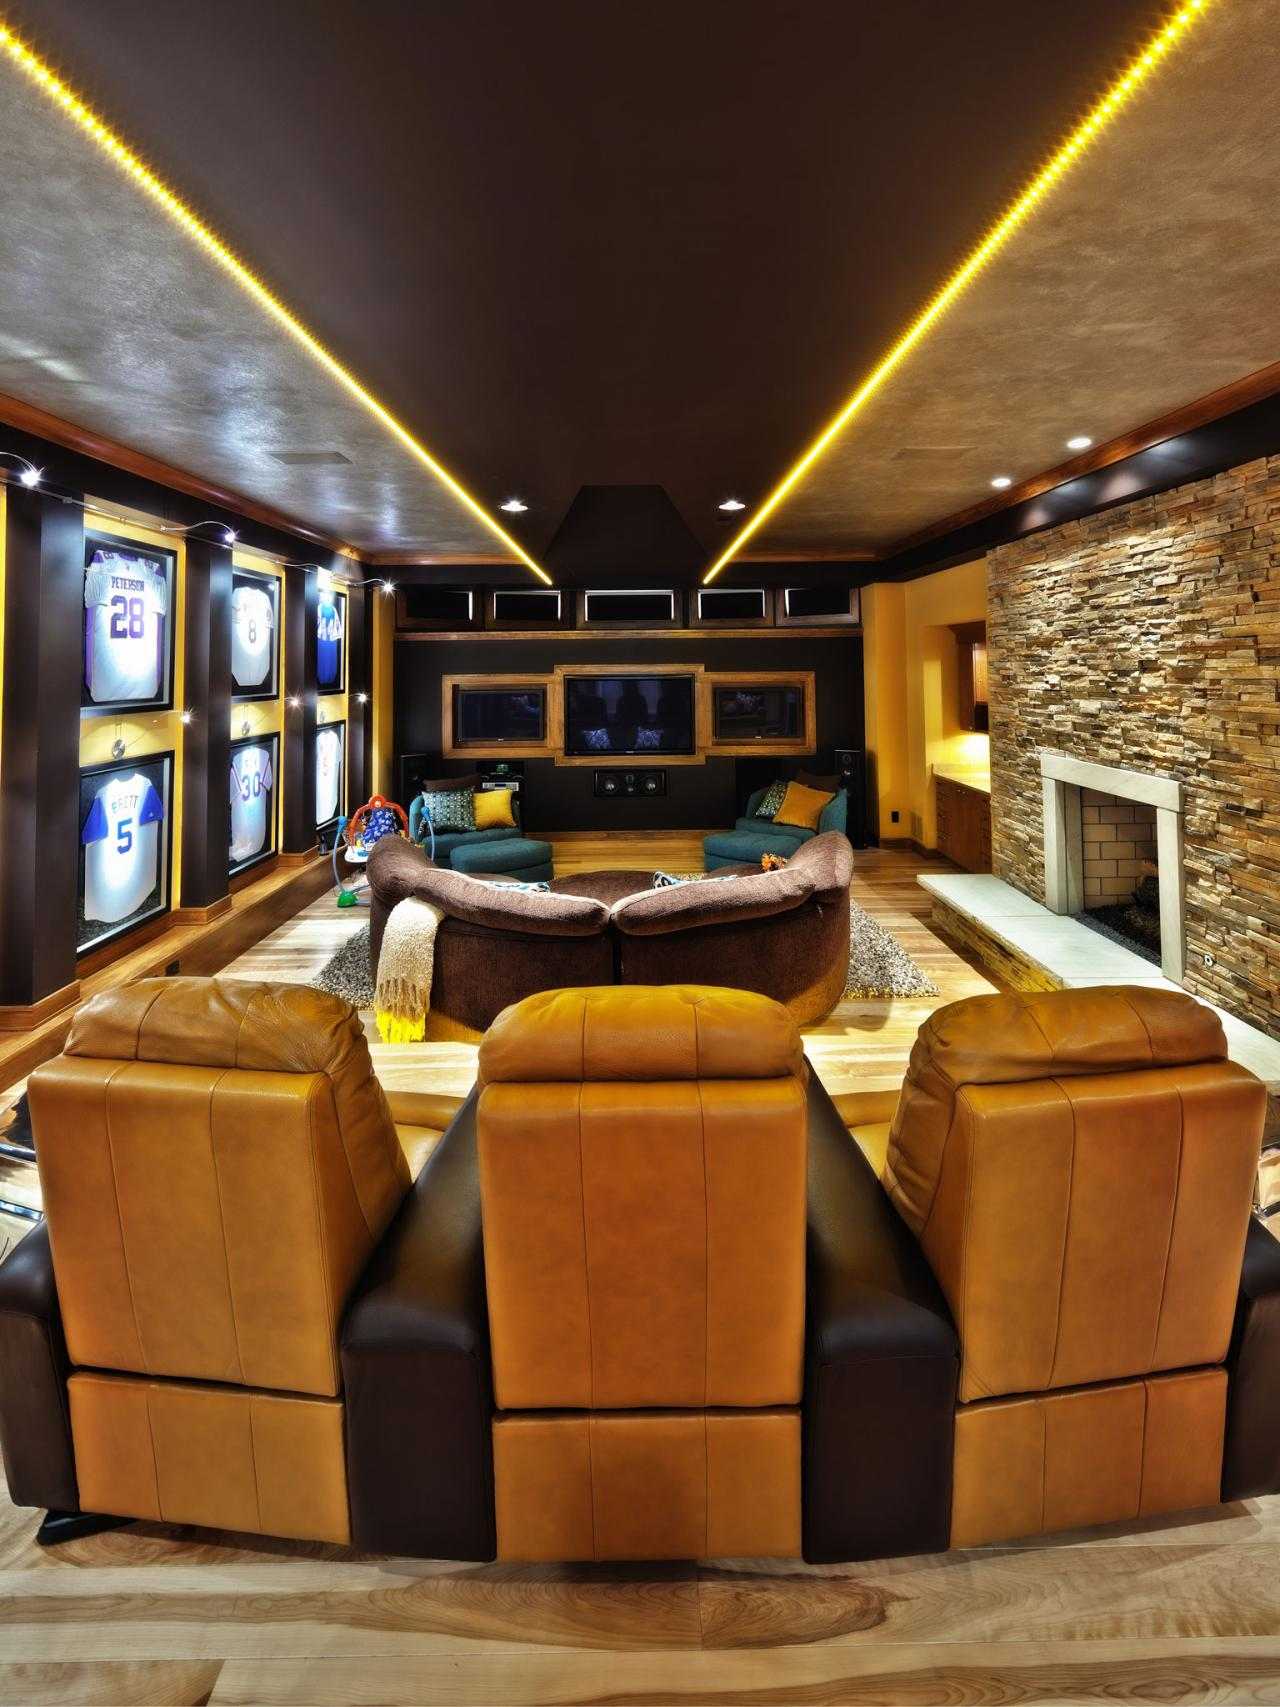 50 Best Man Cave Ideas and Designs for 2019